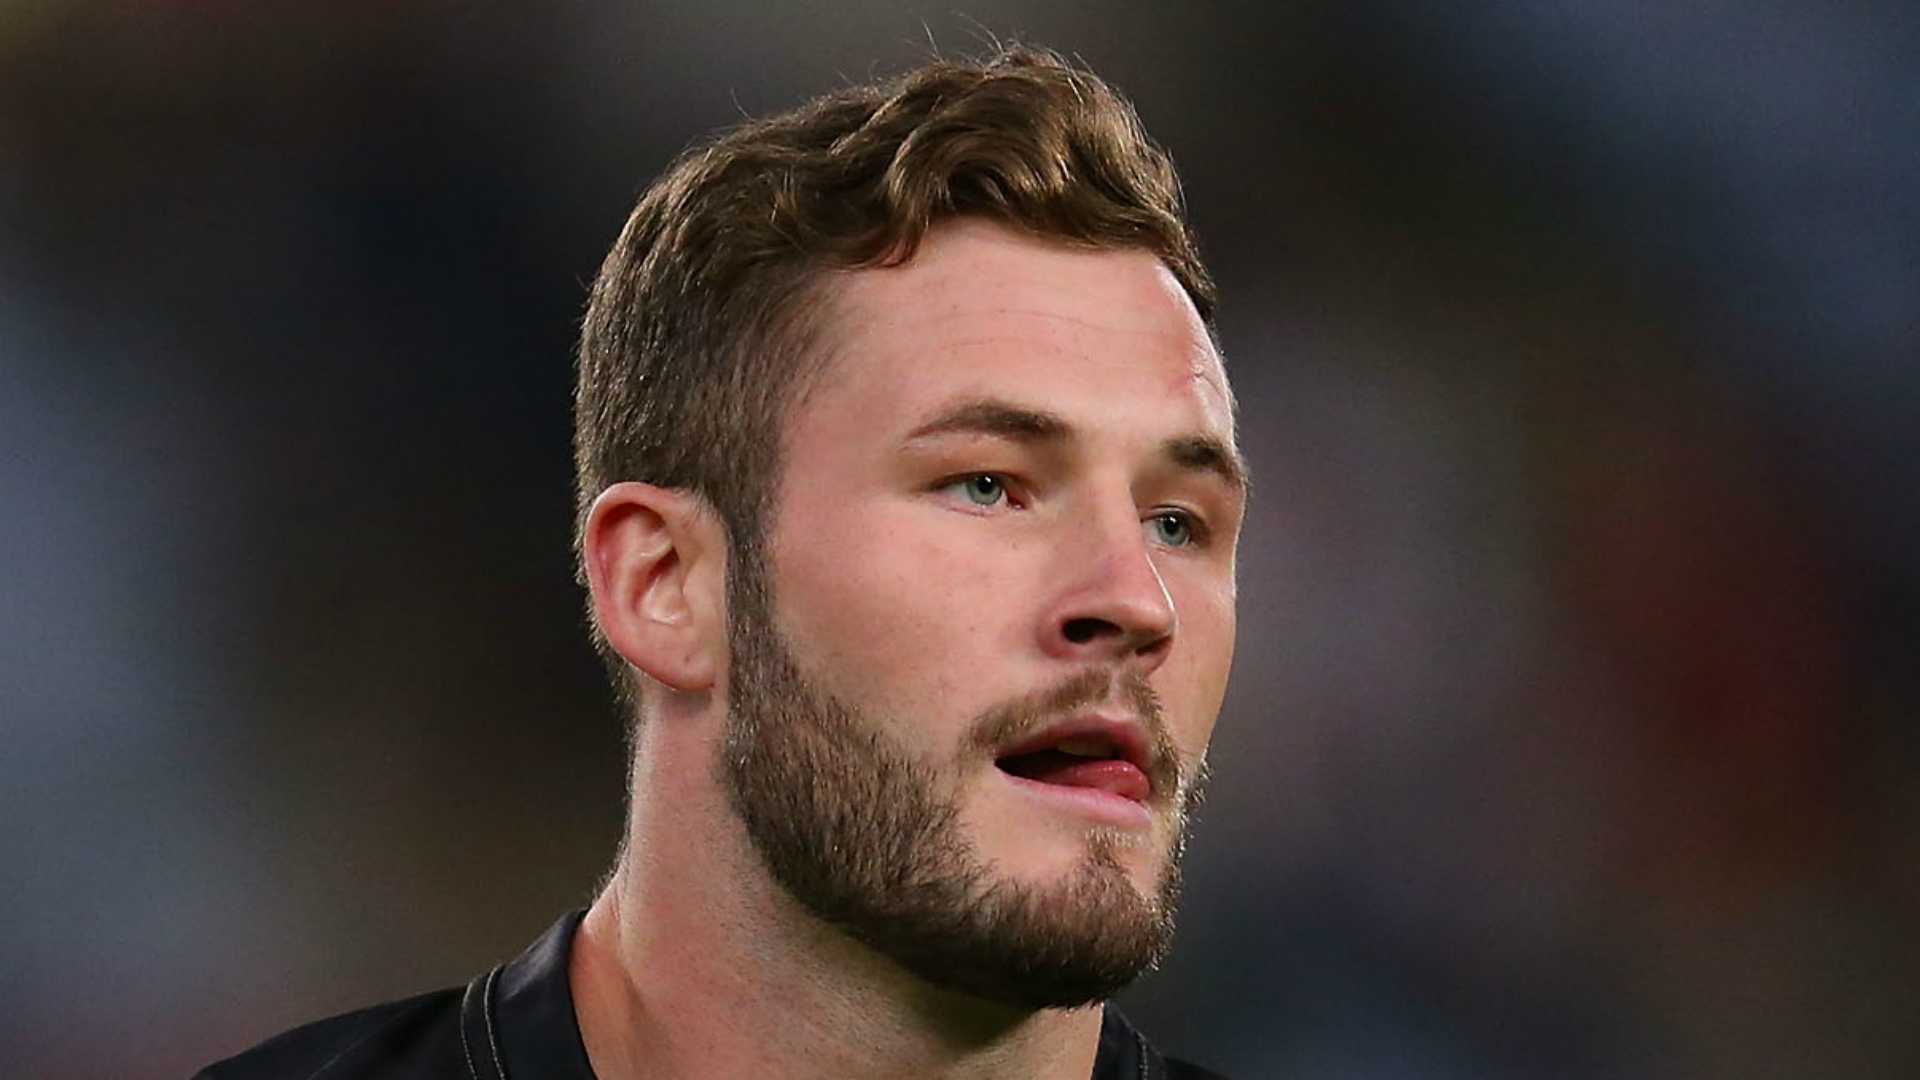 Drink-driving arrest a 'defining moment in my life' - Hardaker